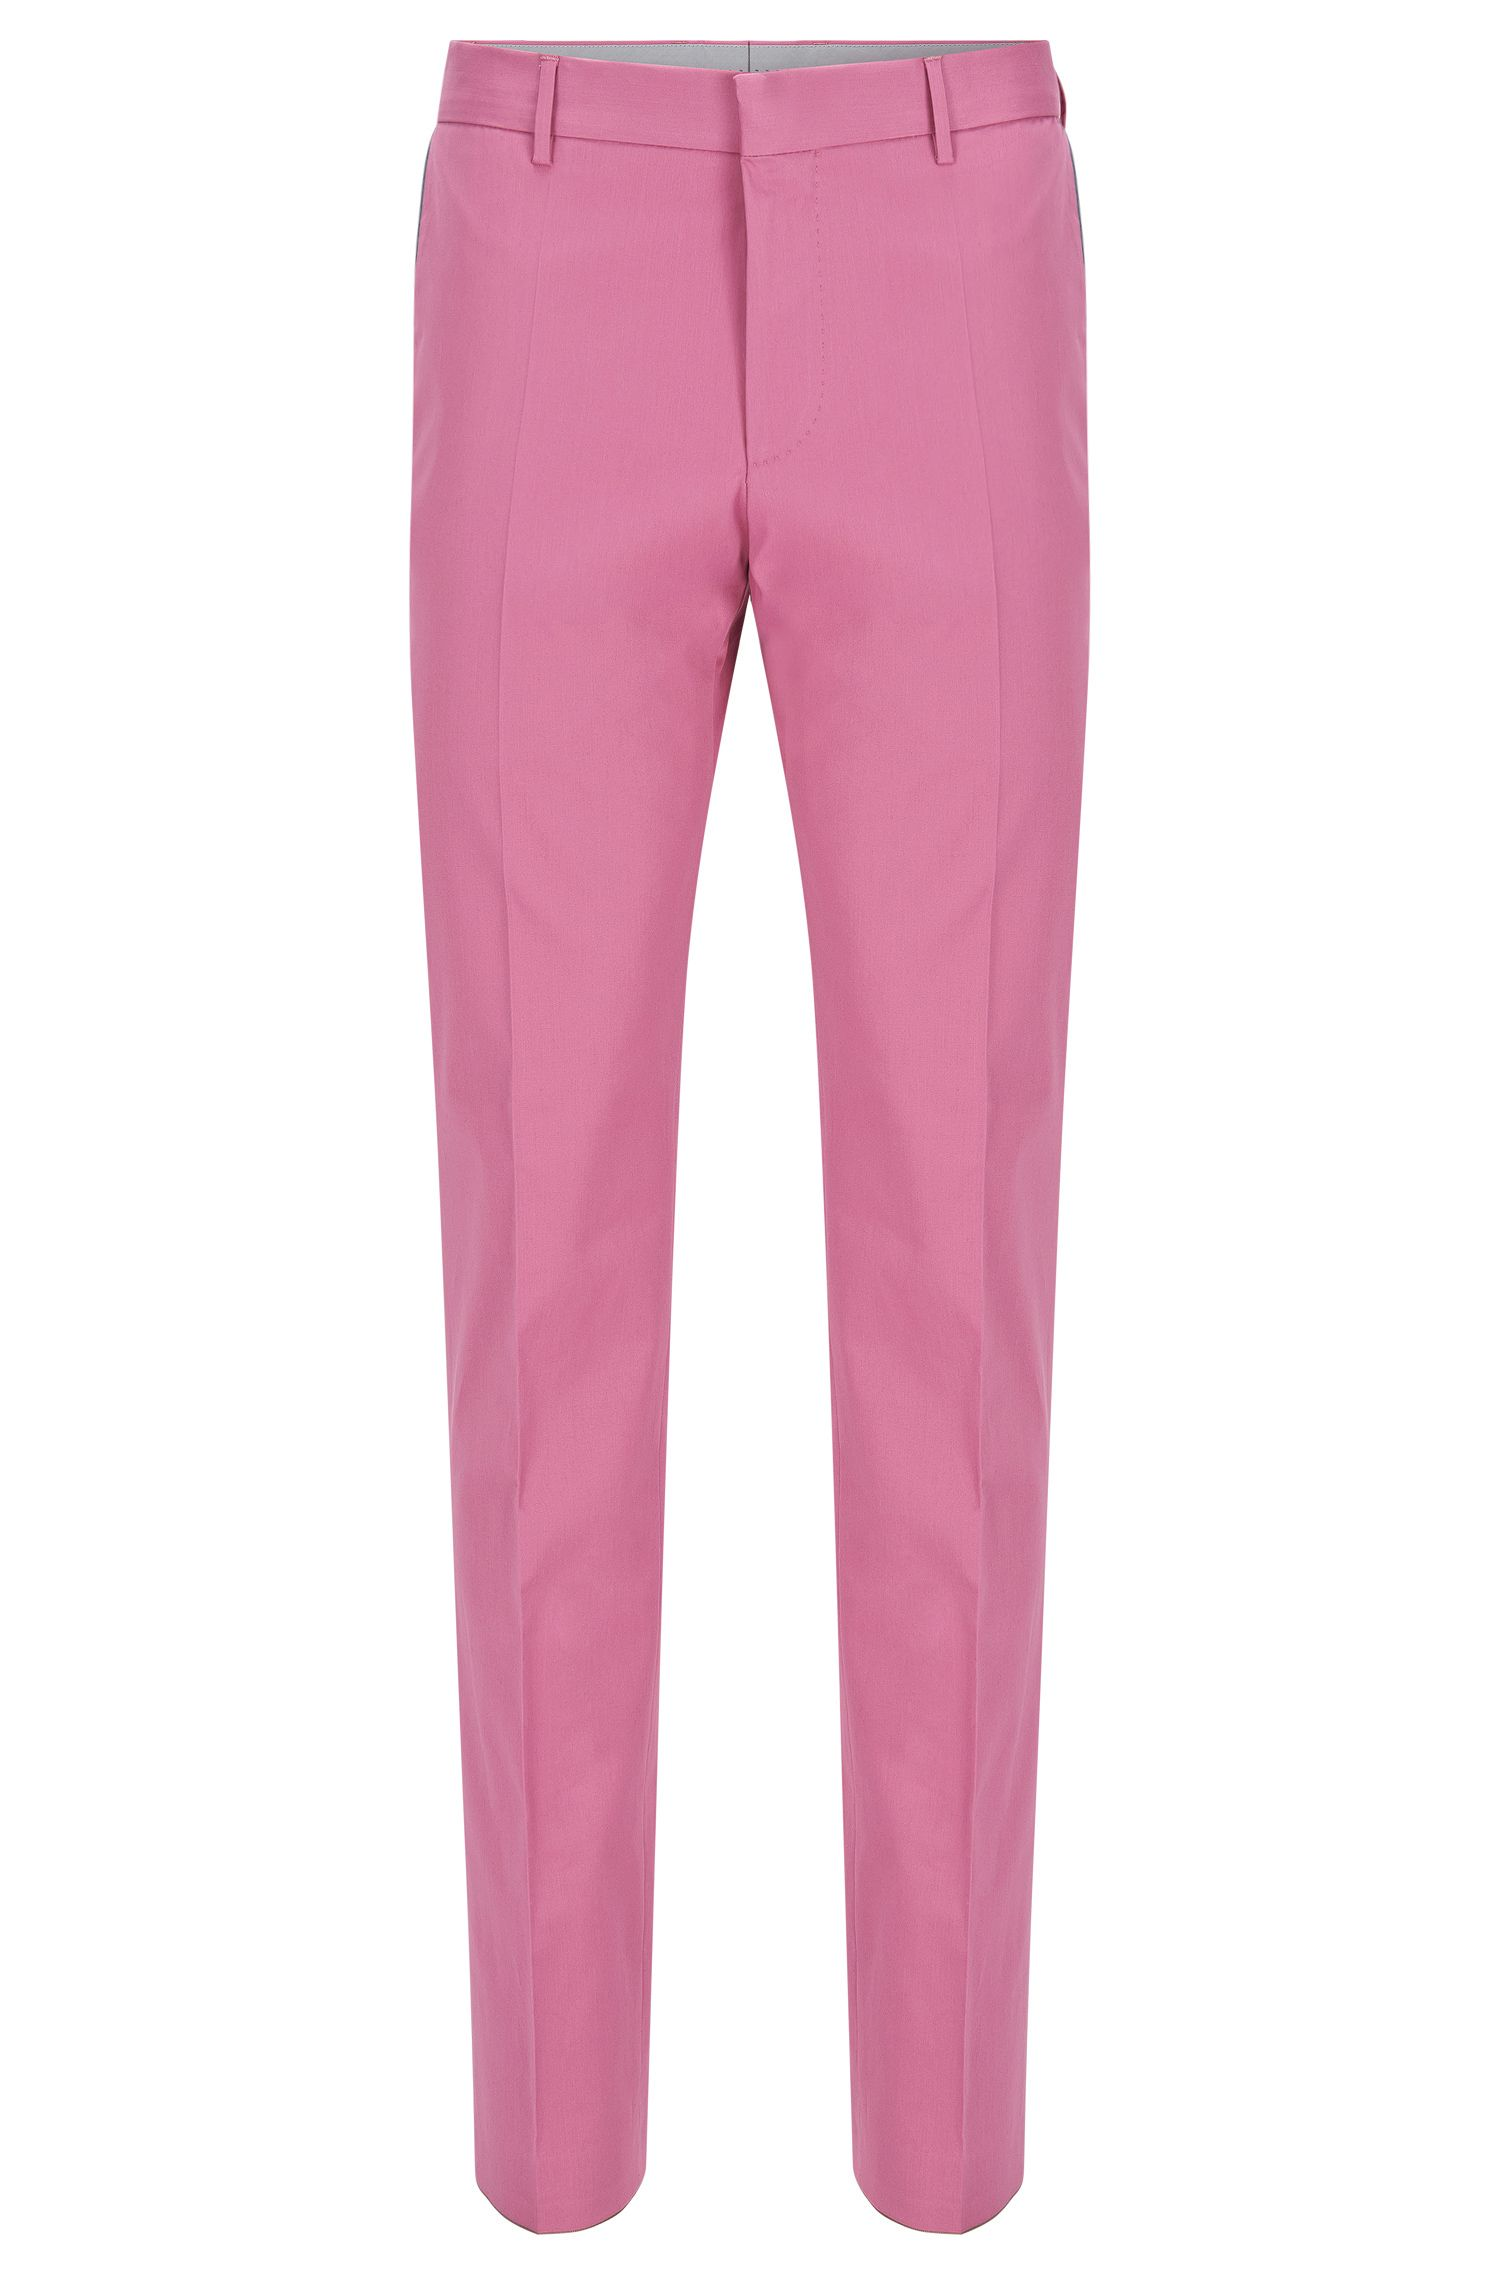 'Bevan' | Slim Fit, Stretch Cotton Trousers